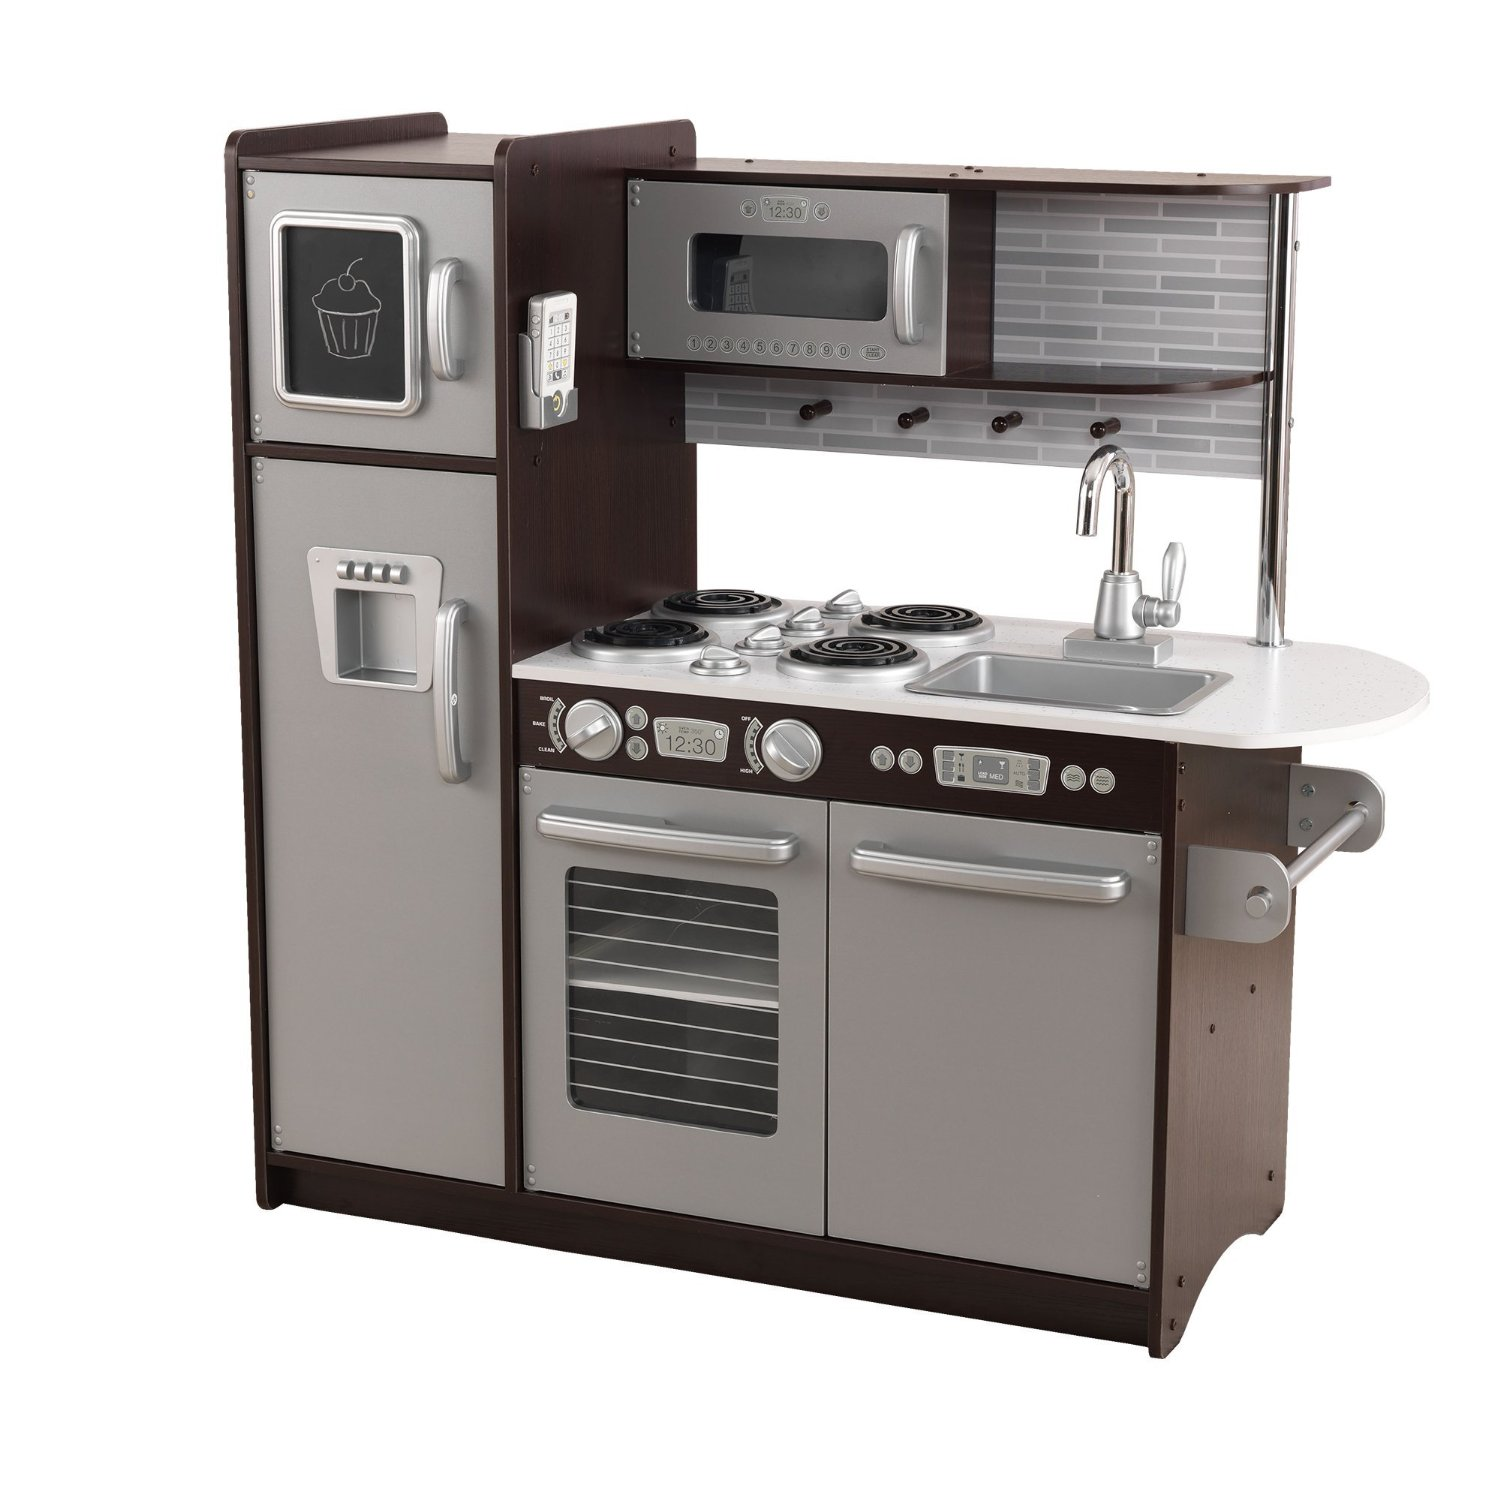 6 Best Play Kitchens For Toddlers Of 2020